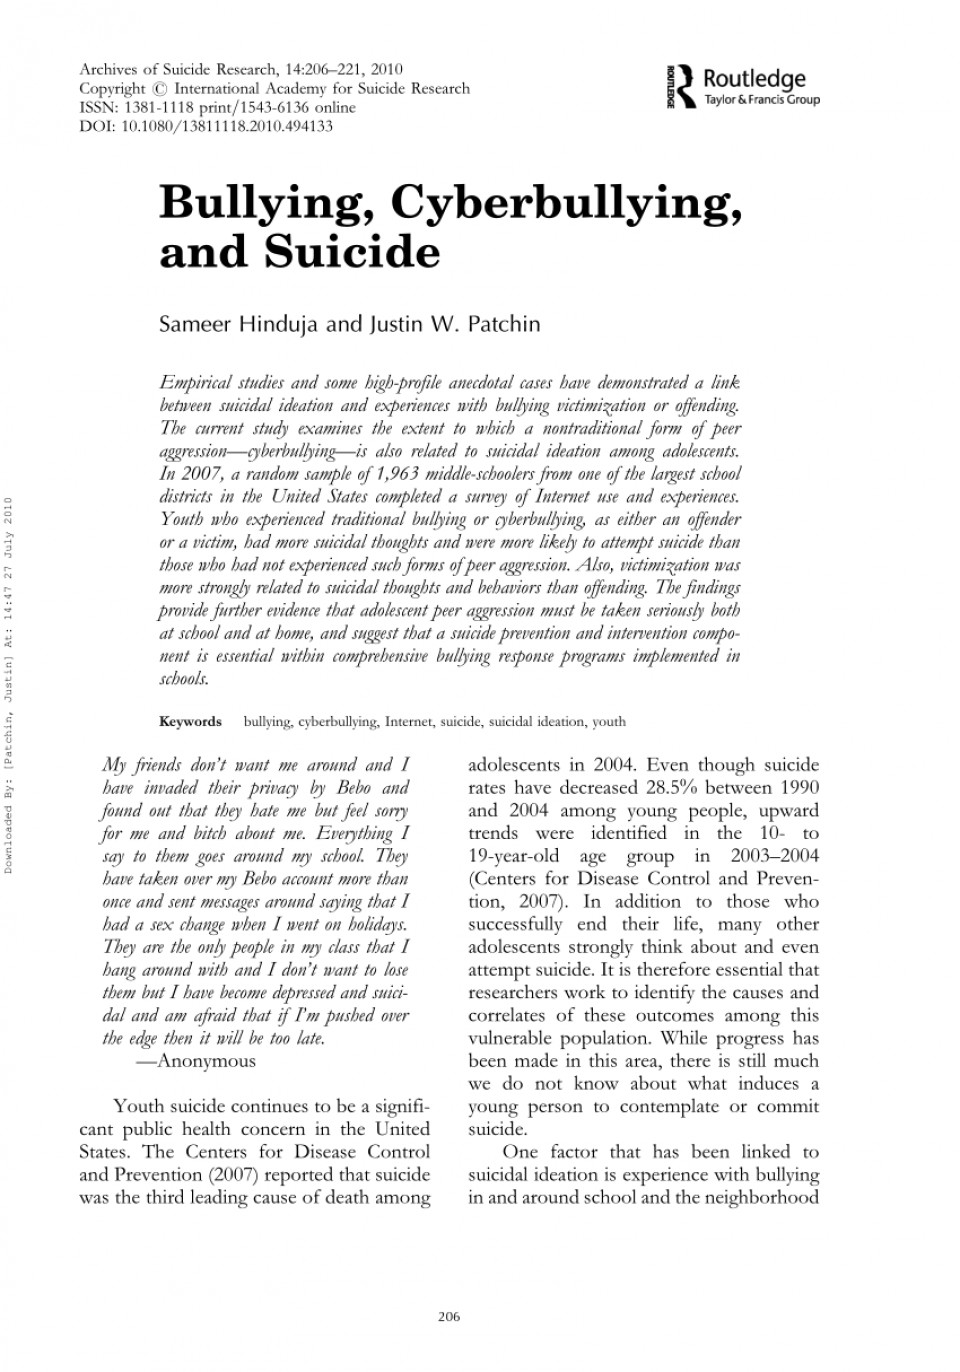 003 Cyberbullying Research Papers Paper Remarkable Effects Of Pdf Titles 960